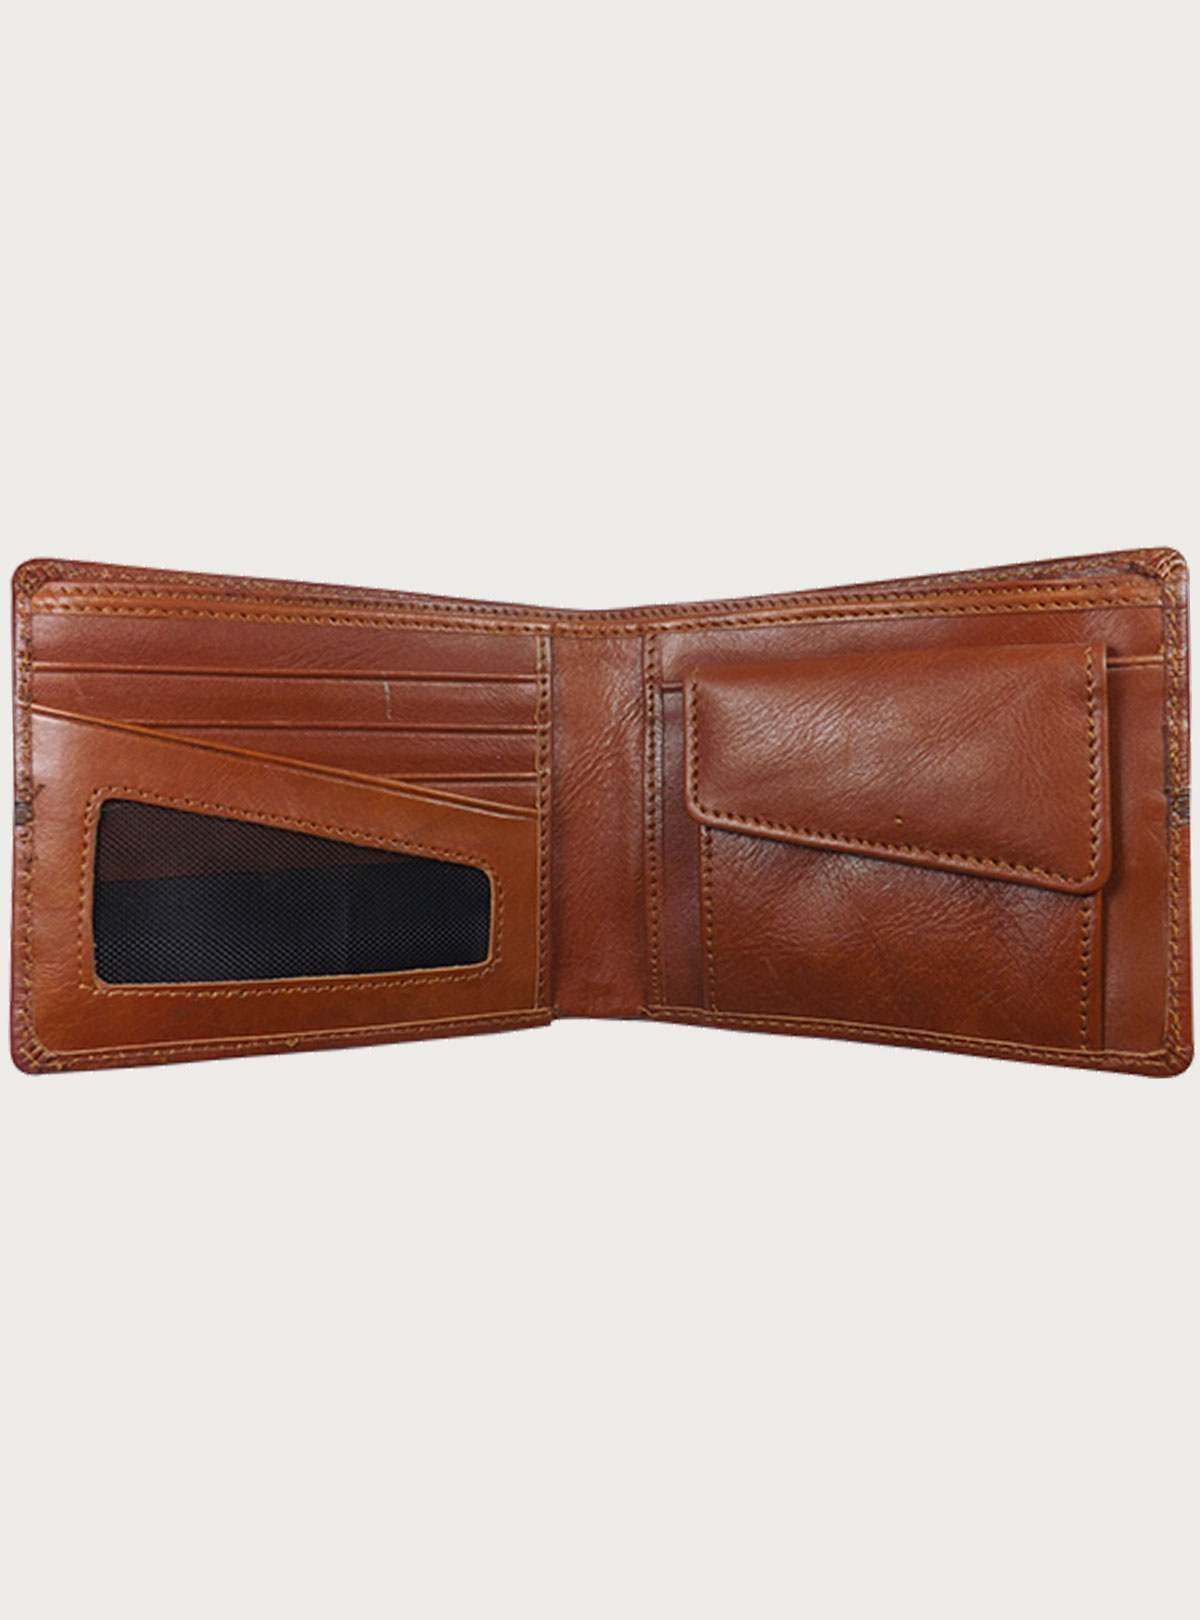 Classic Brown Leather Wallet AR71